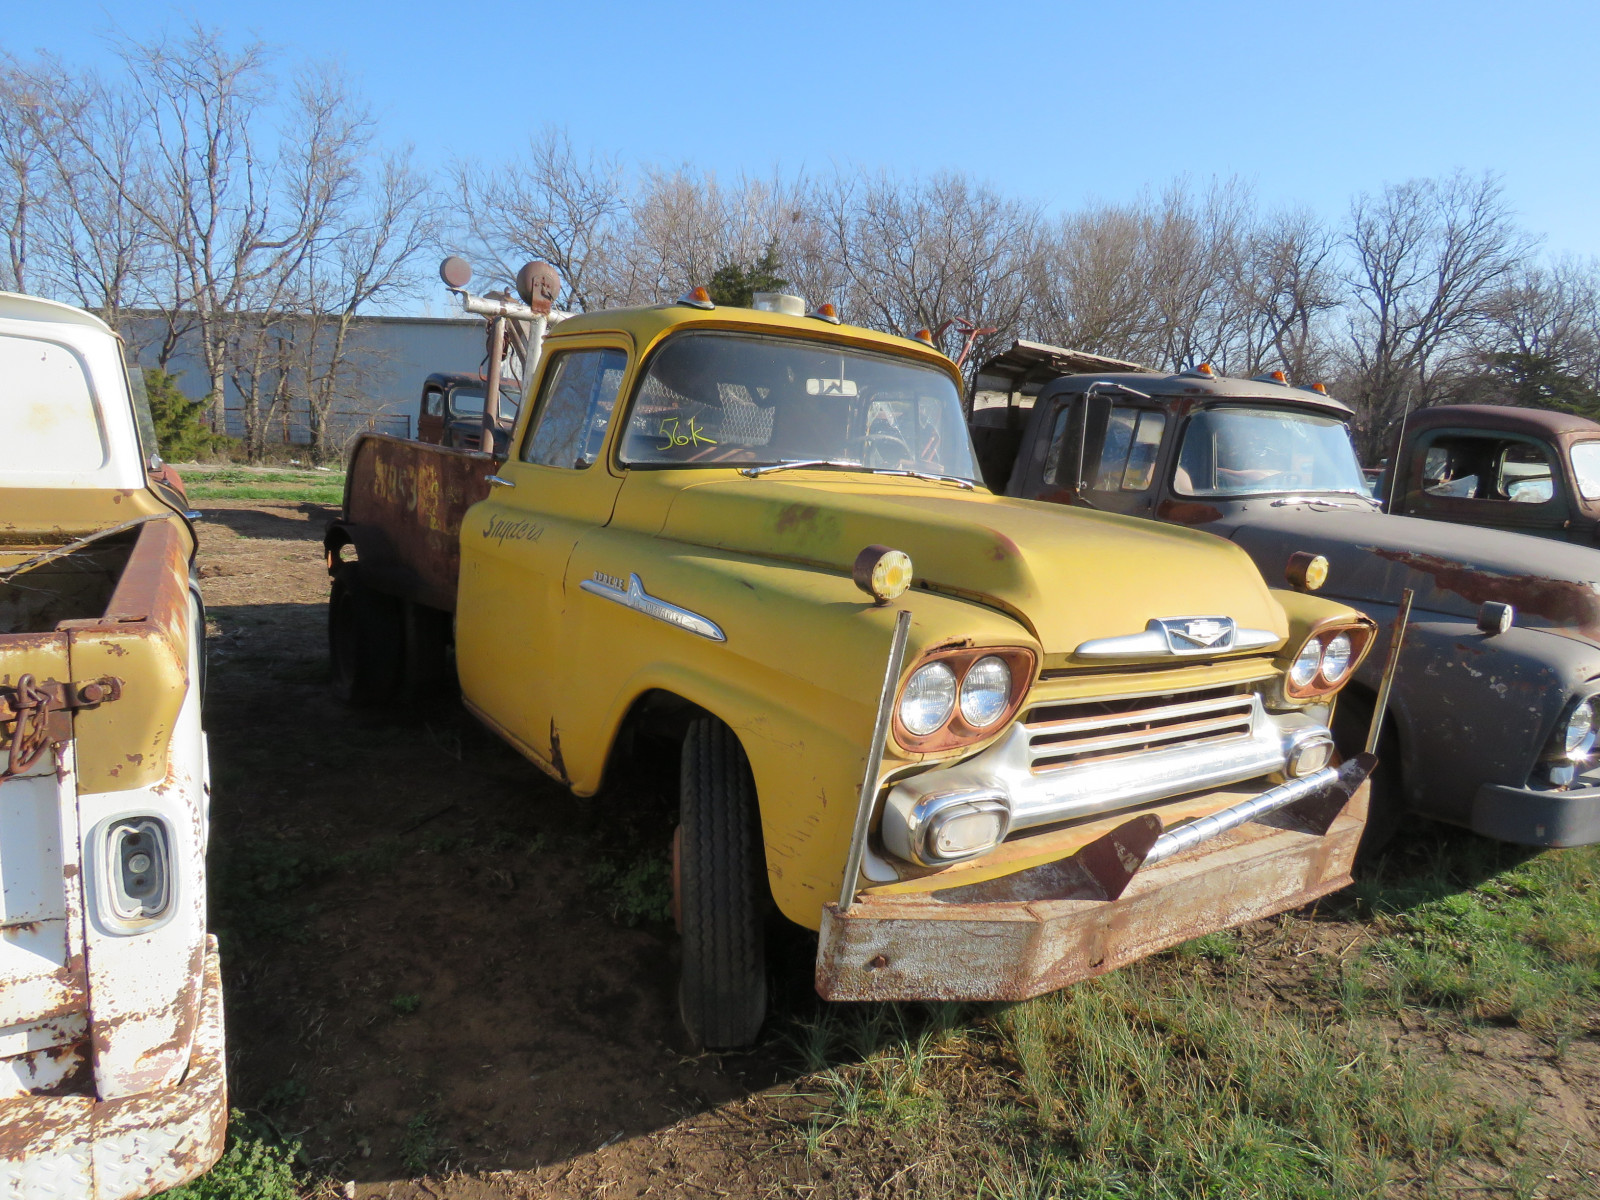 1958 Chevrolet Apache Tow Truck - Image 1